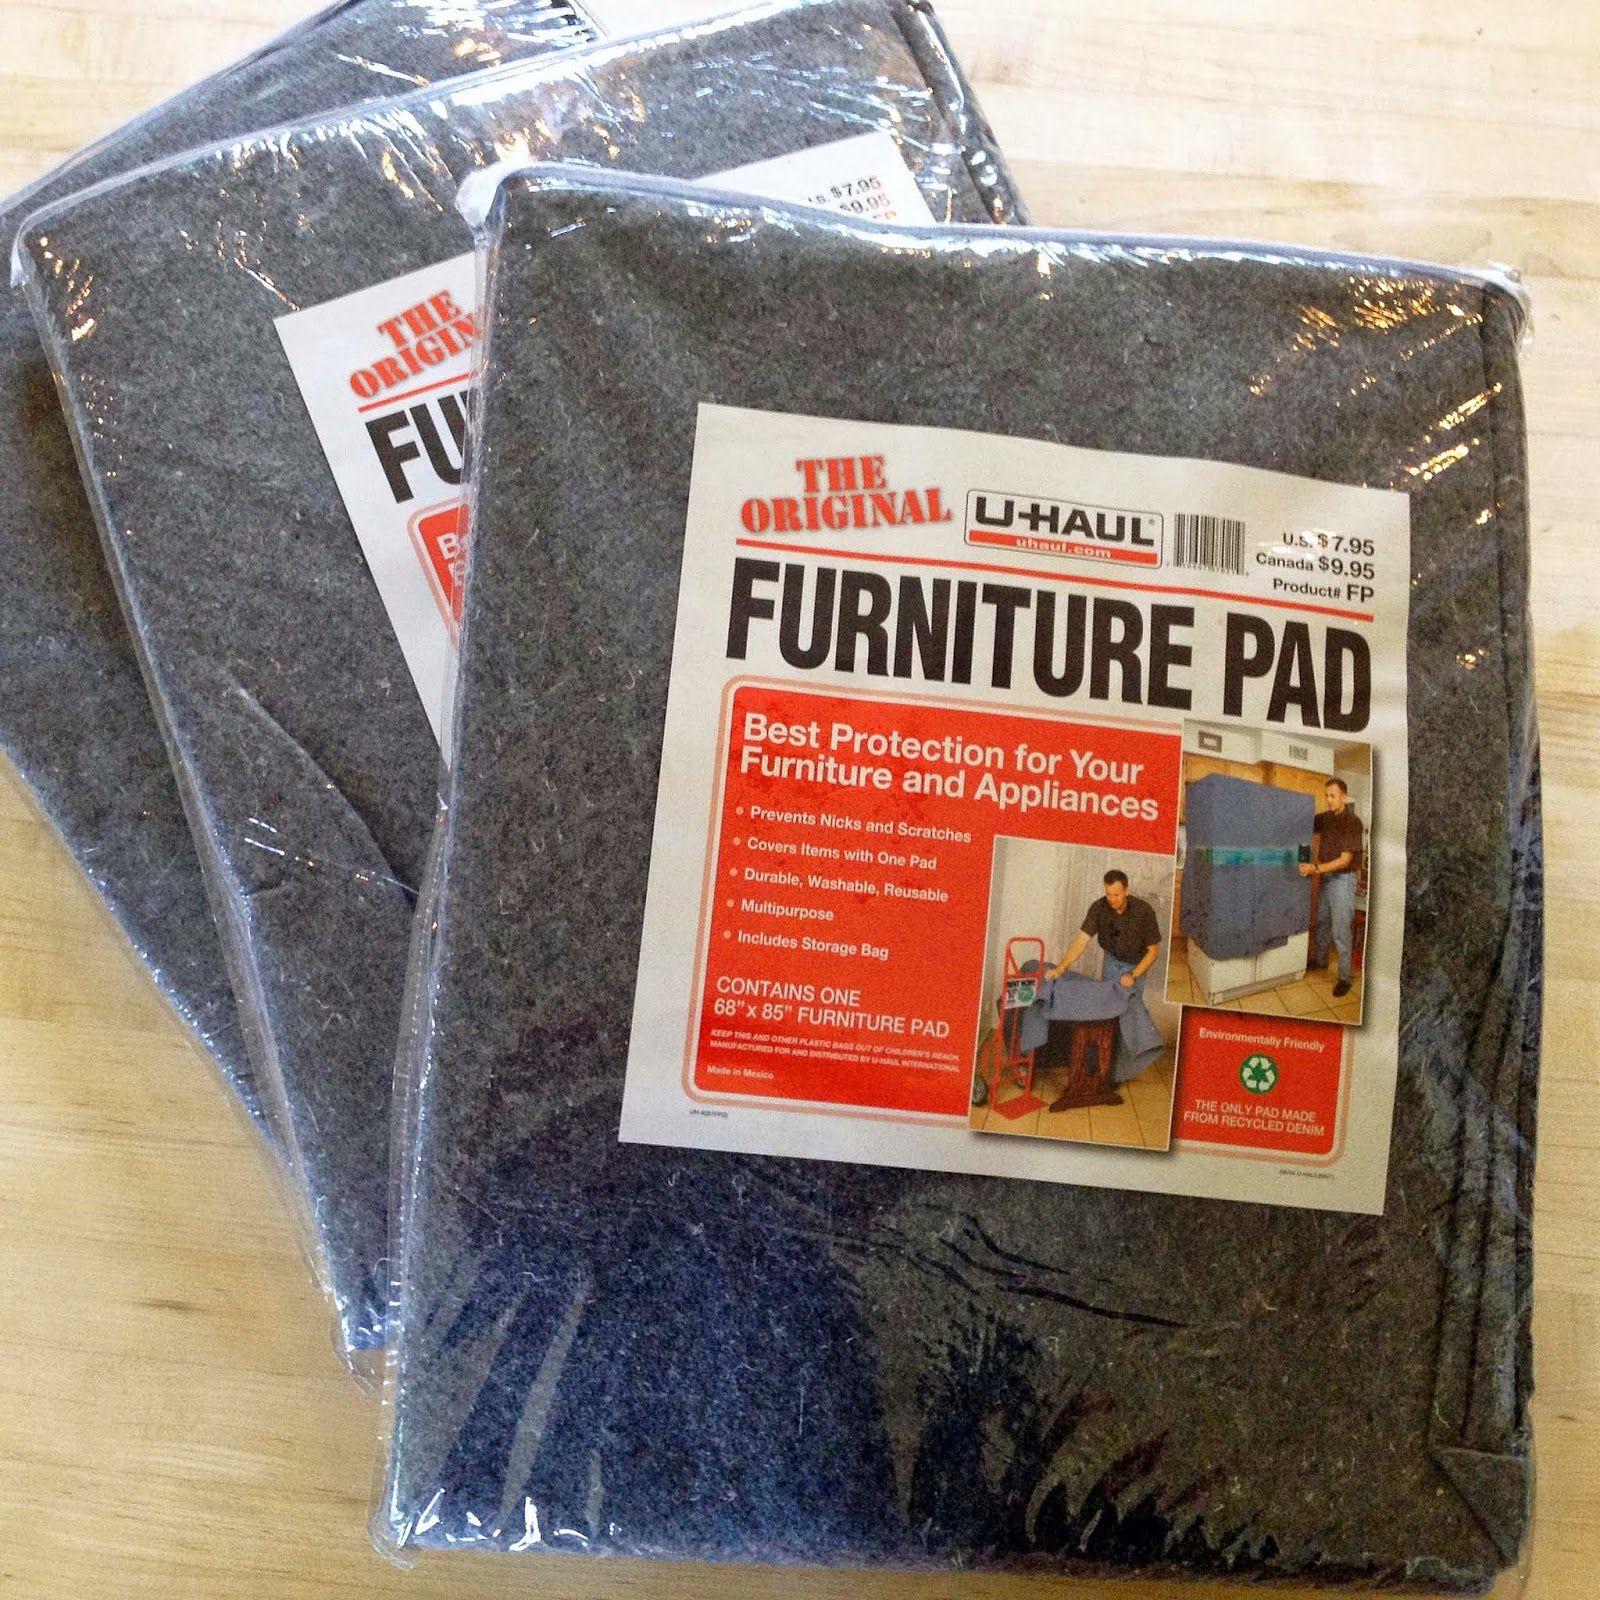 U Haul Furniture Pads in Packaging work great for guinea pig cages